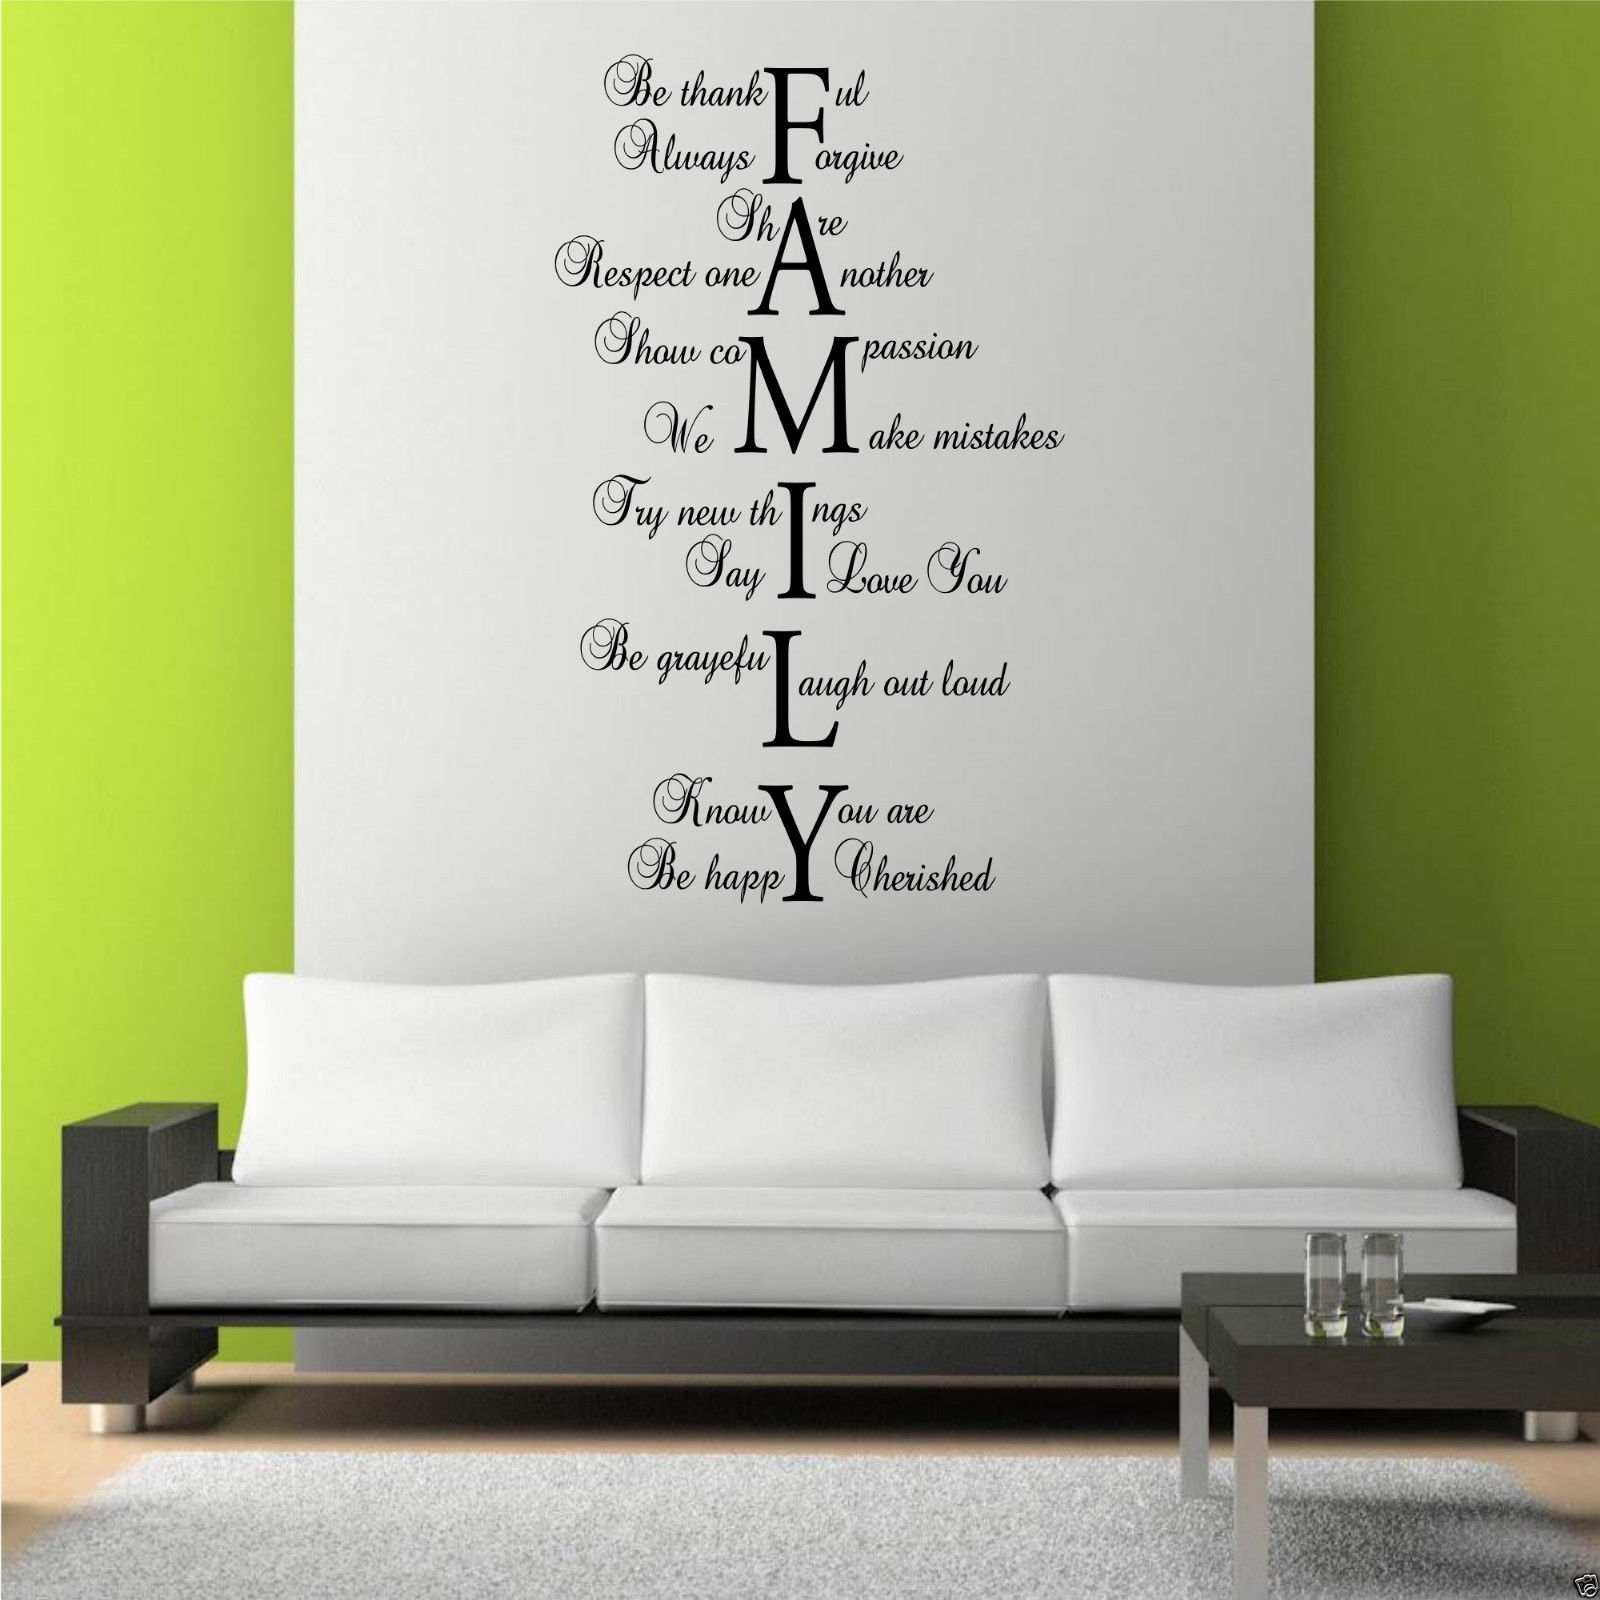 B Awesome Www Wall Cool Www Wall Art Stickers – Wall Decoration Ideas For Best And Newest Wall Art Stickers (View 2 of 15)